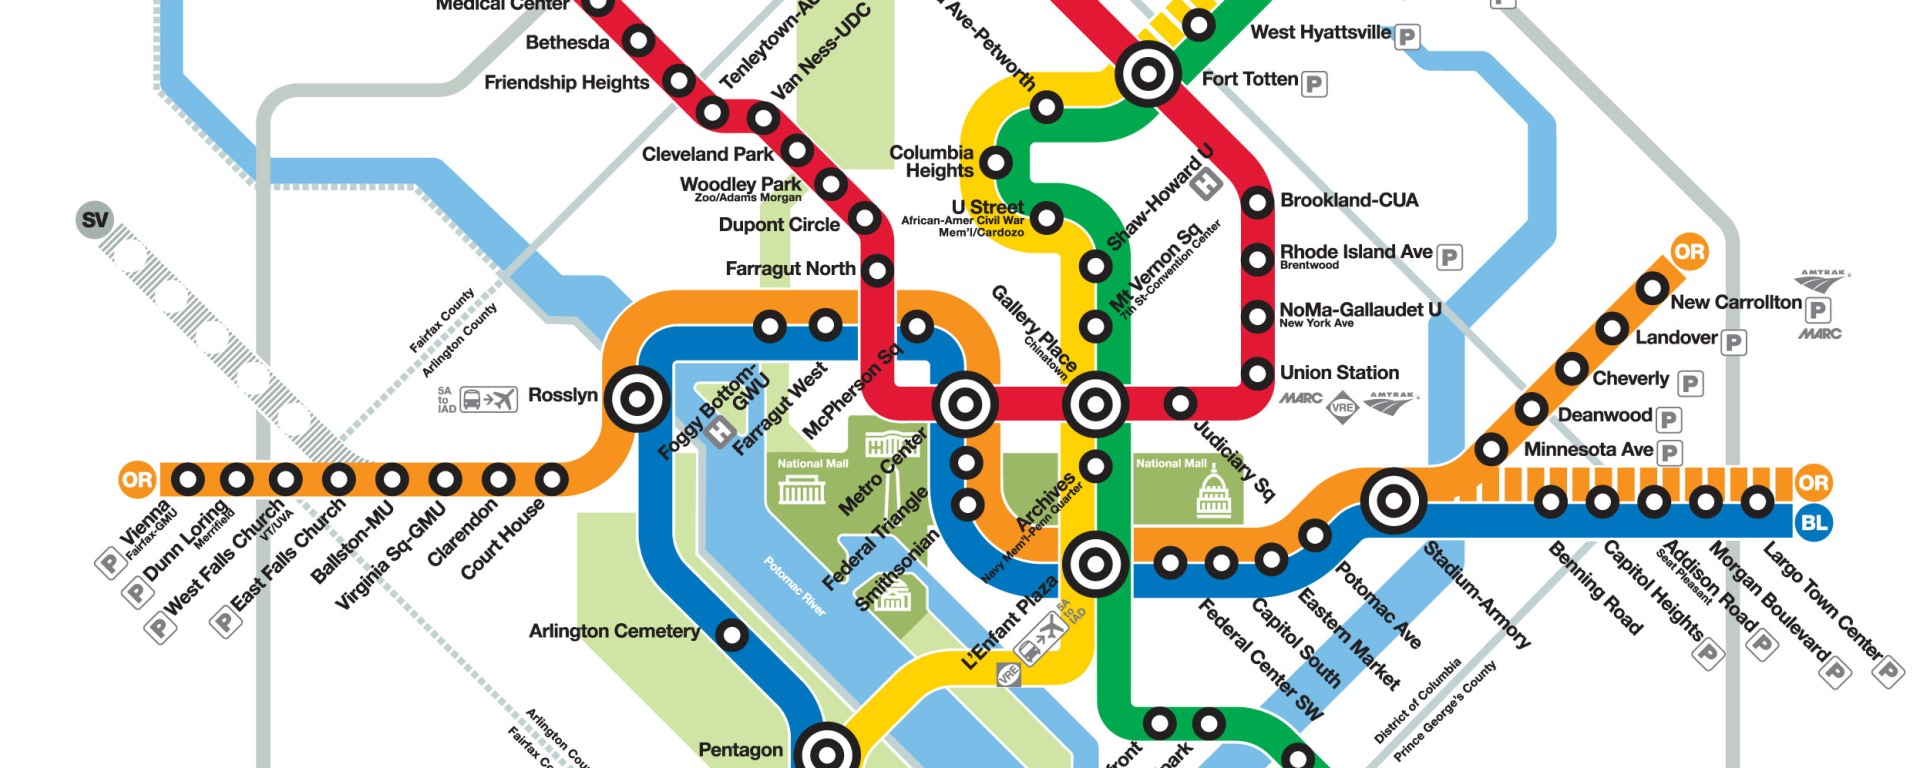 Tehran Subway Map.Building A Better Subway Map National Geographic Education Blog